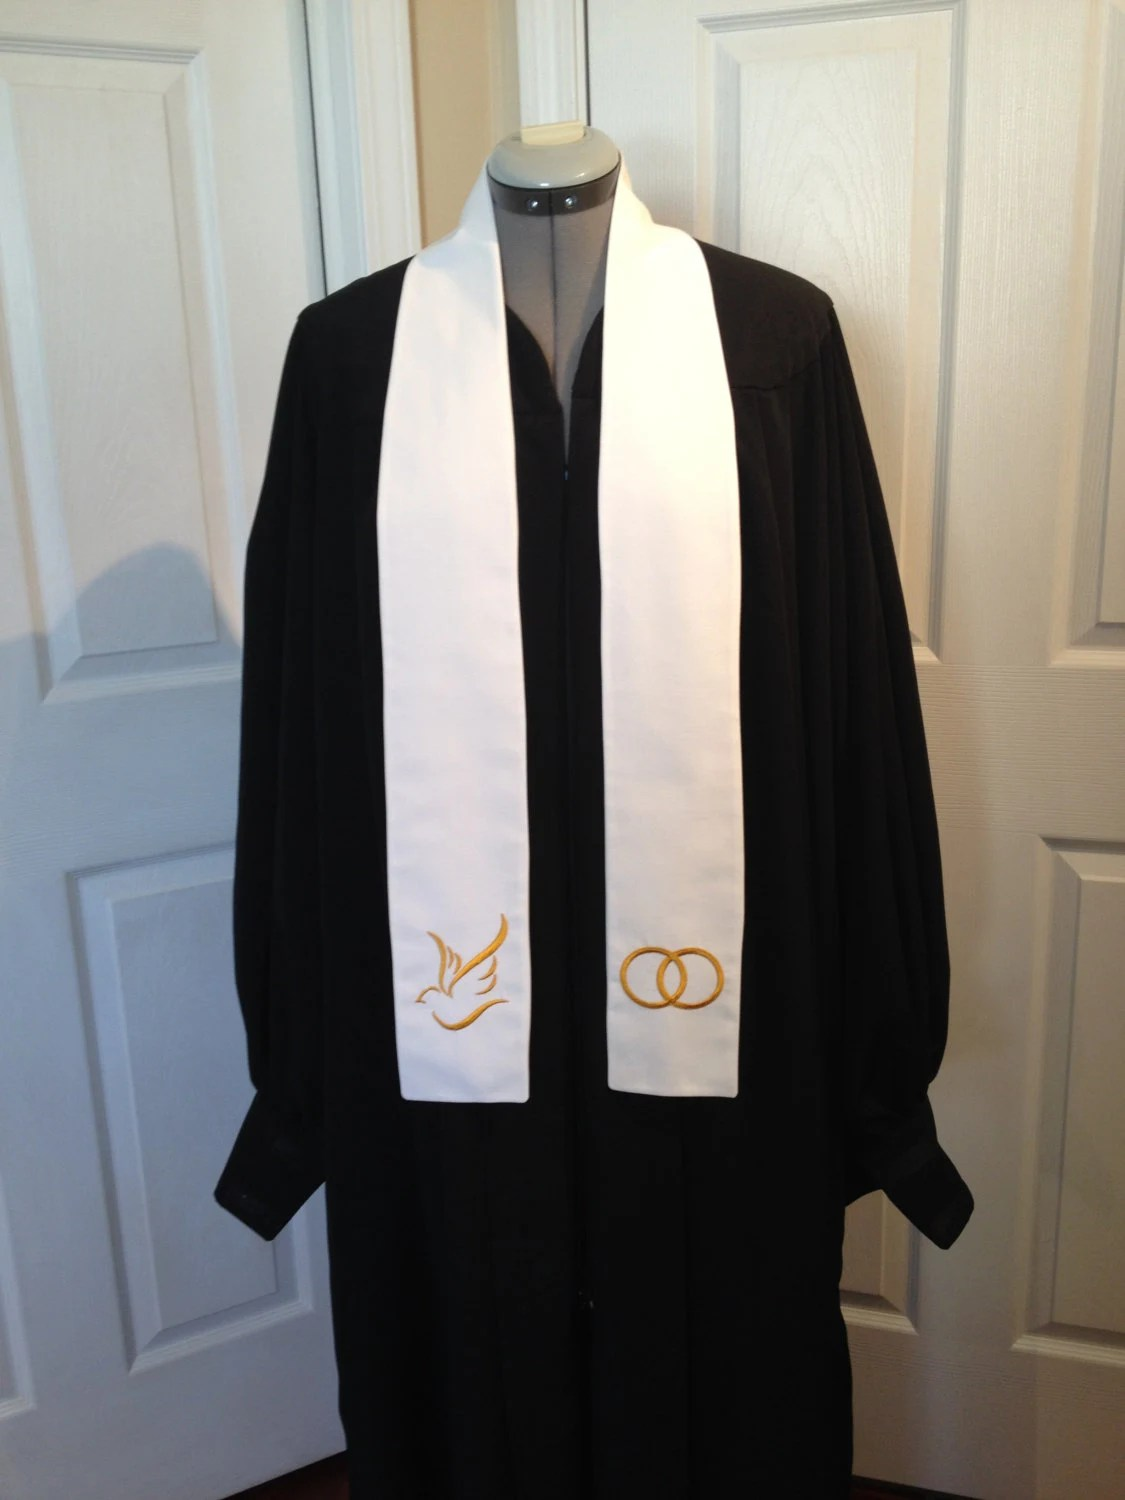 Wedding Officiant Clergy Stole or Vestment